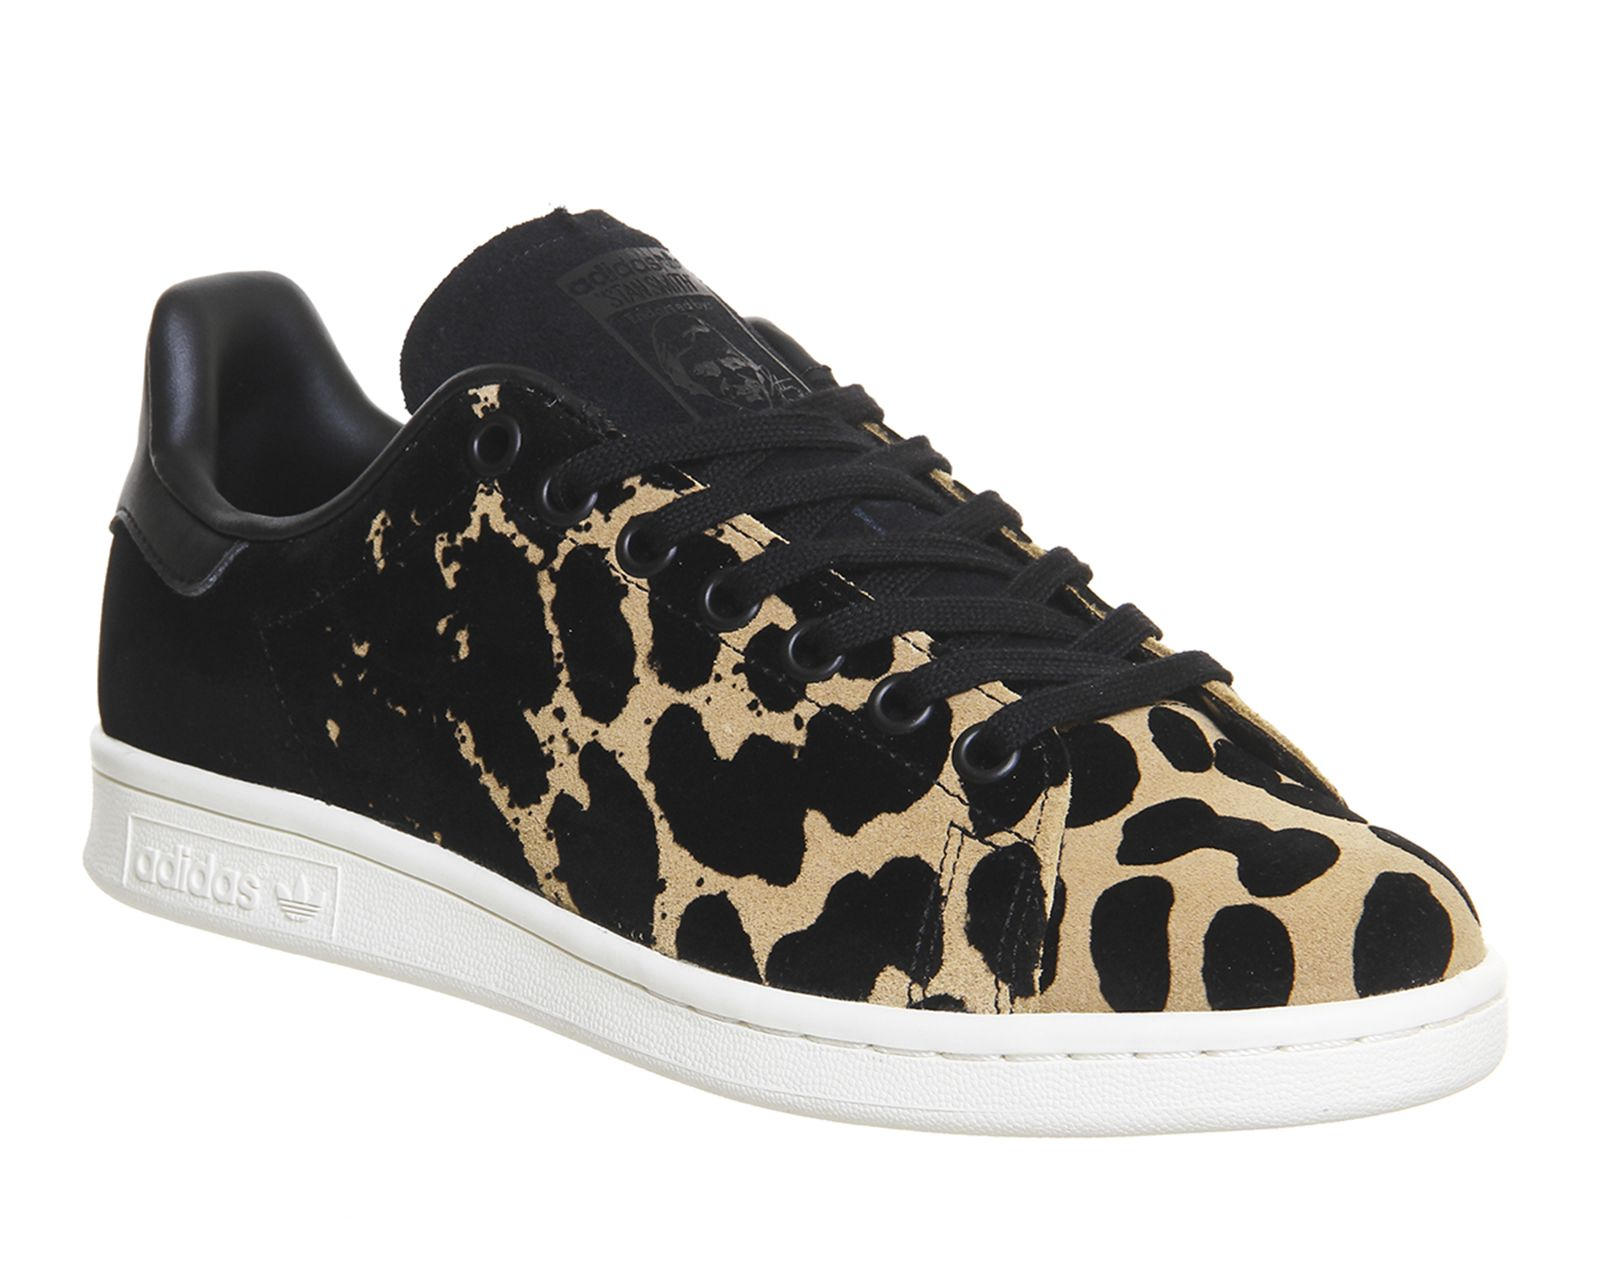 Adidas Stan Smith Black Leopard - Unisex Sports